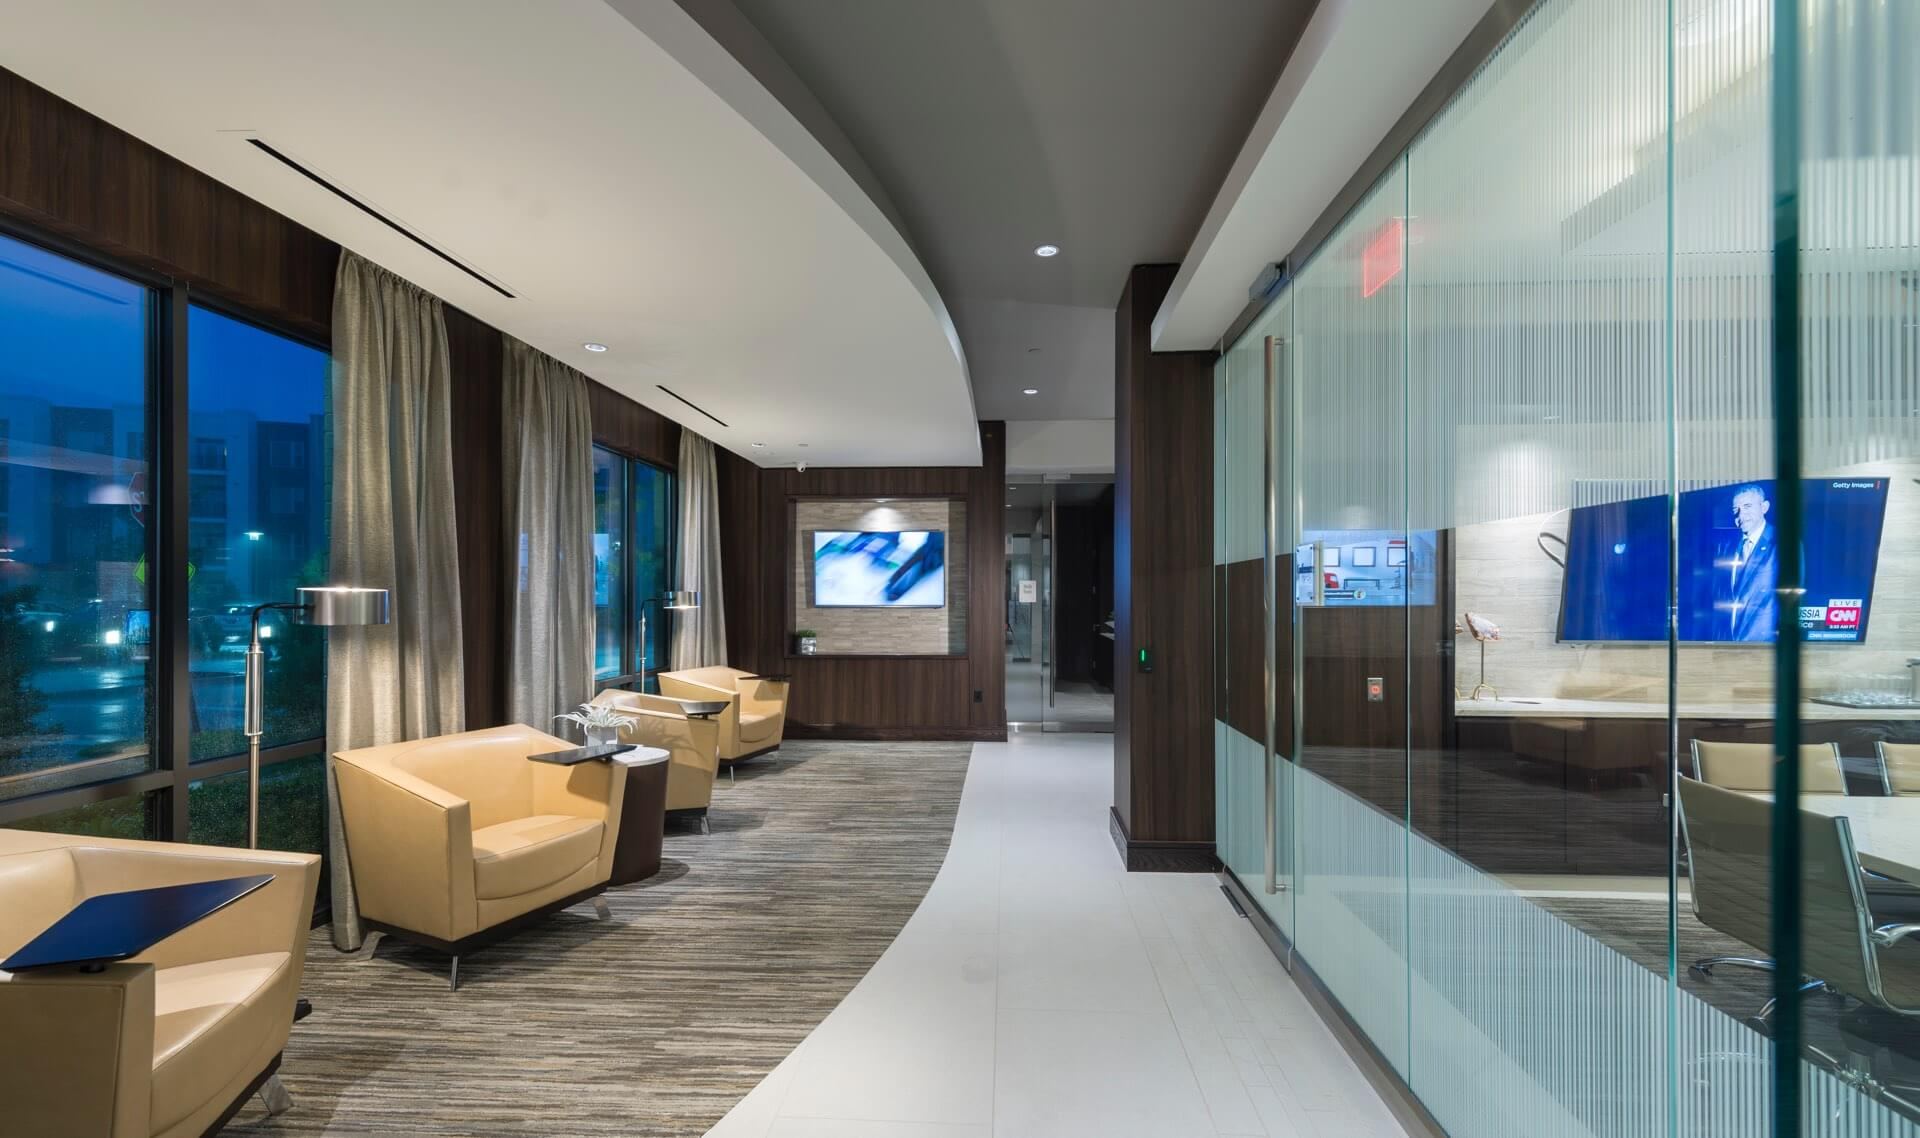 Resident forum with lounge seating & conference room with media console